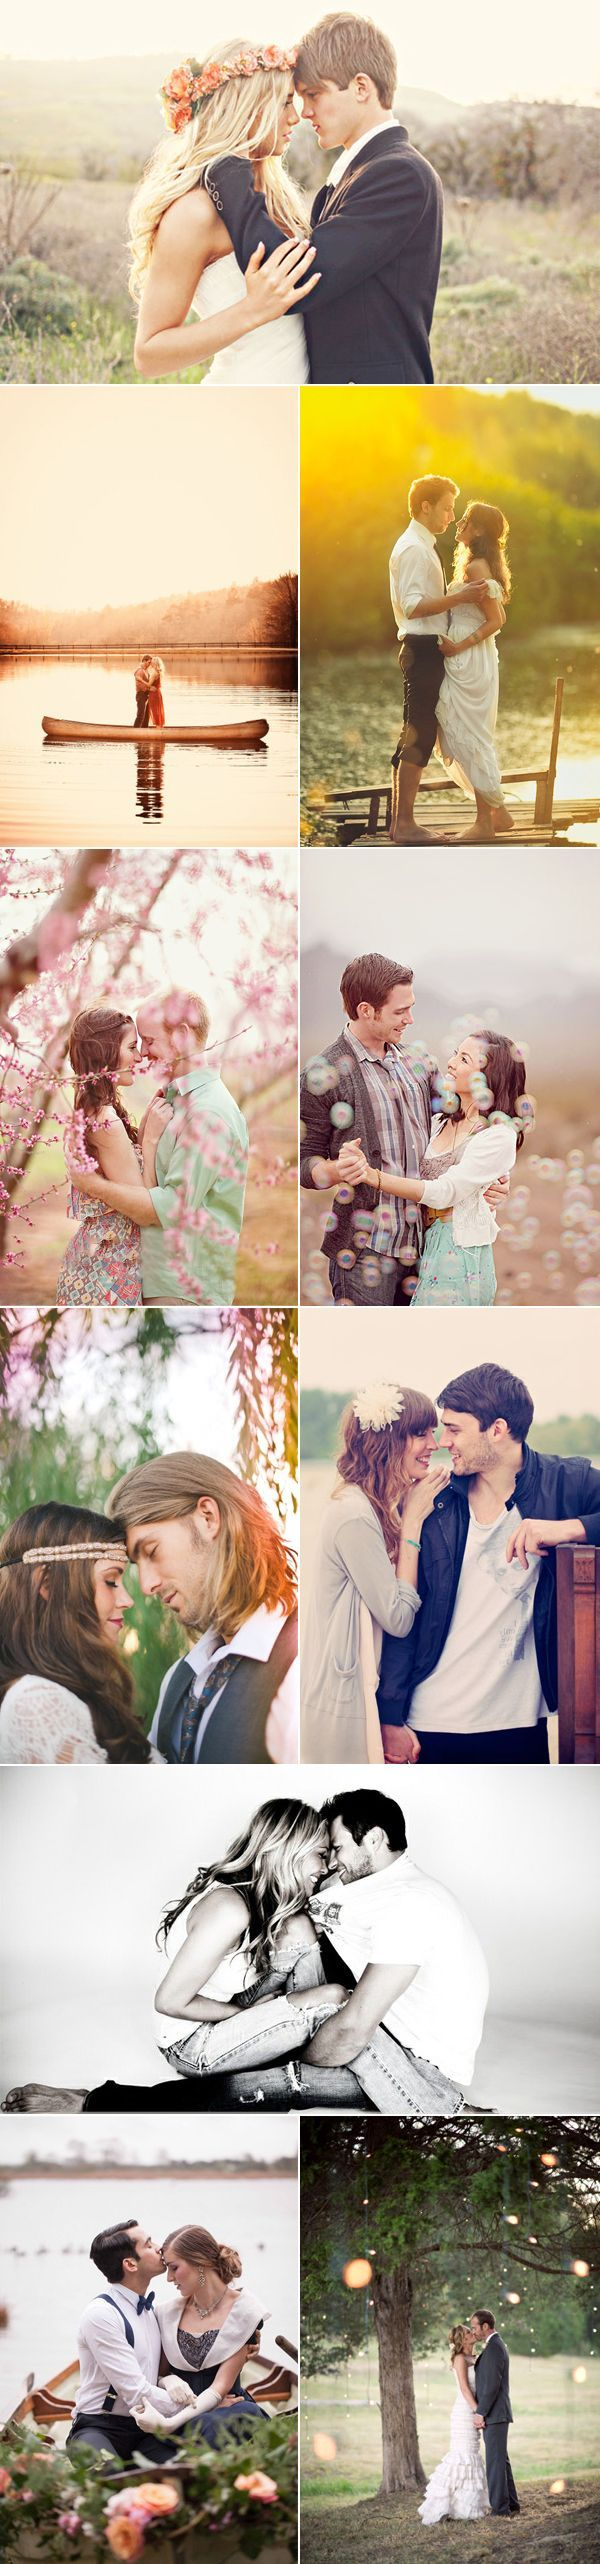 23 Romantic Engagement Photos